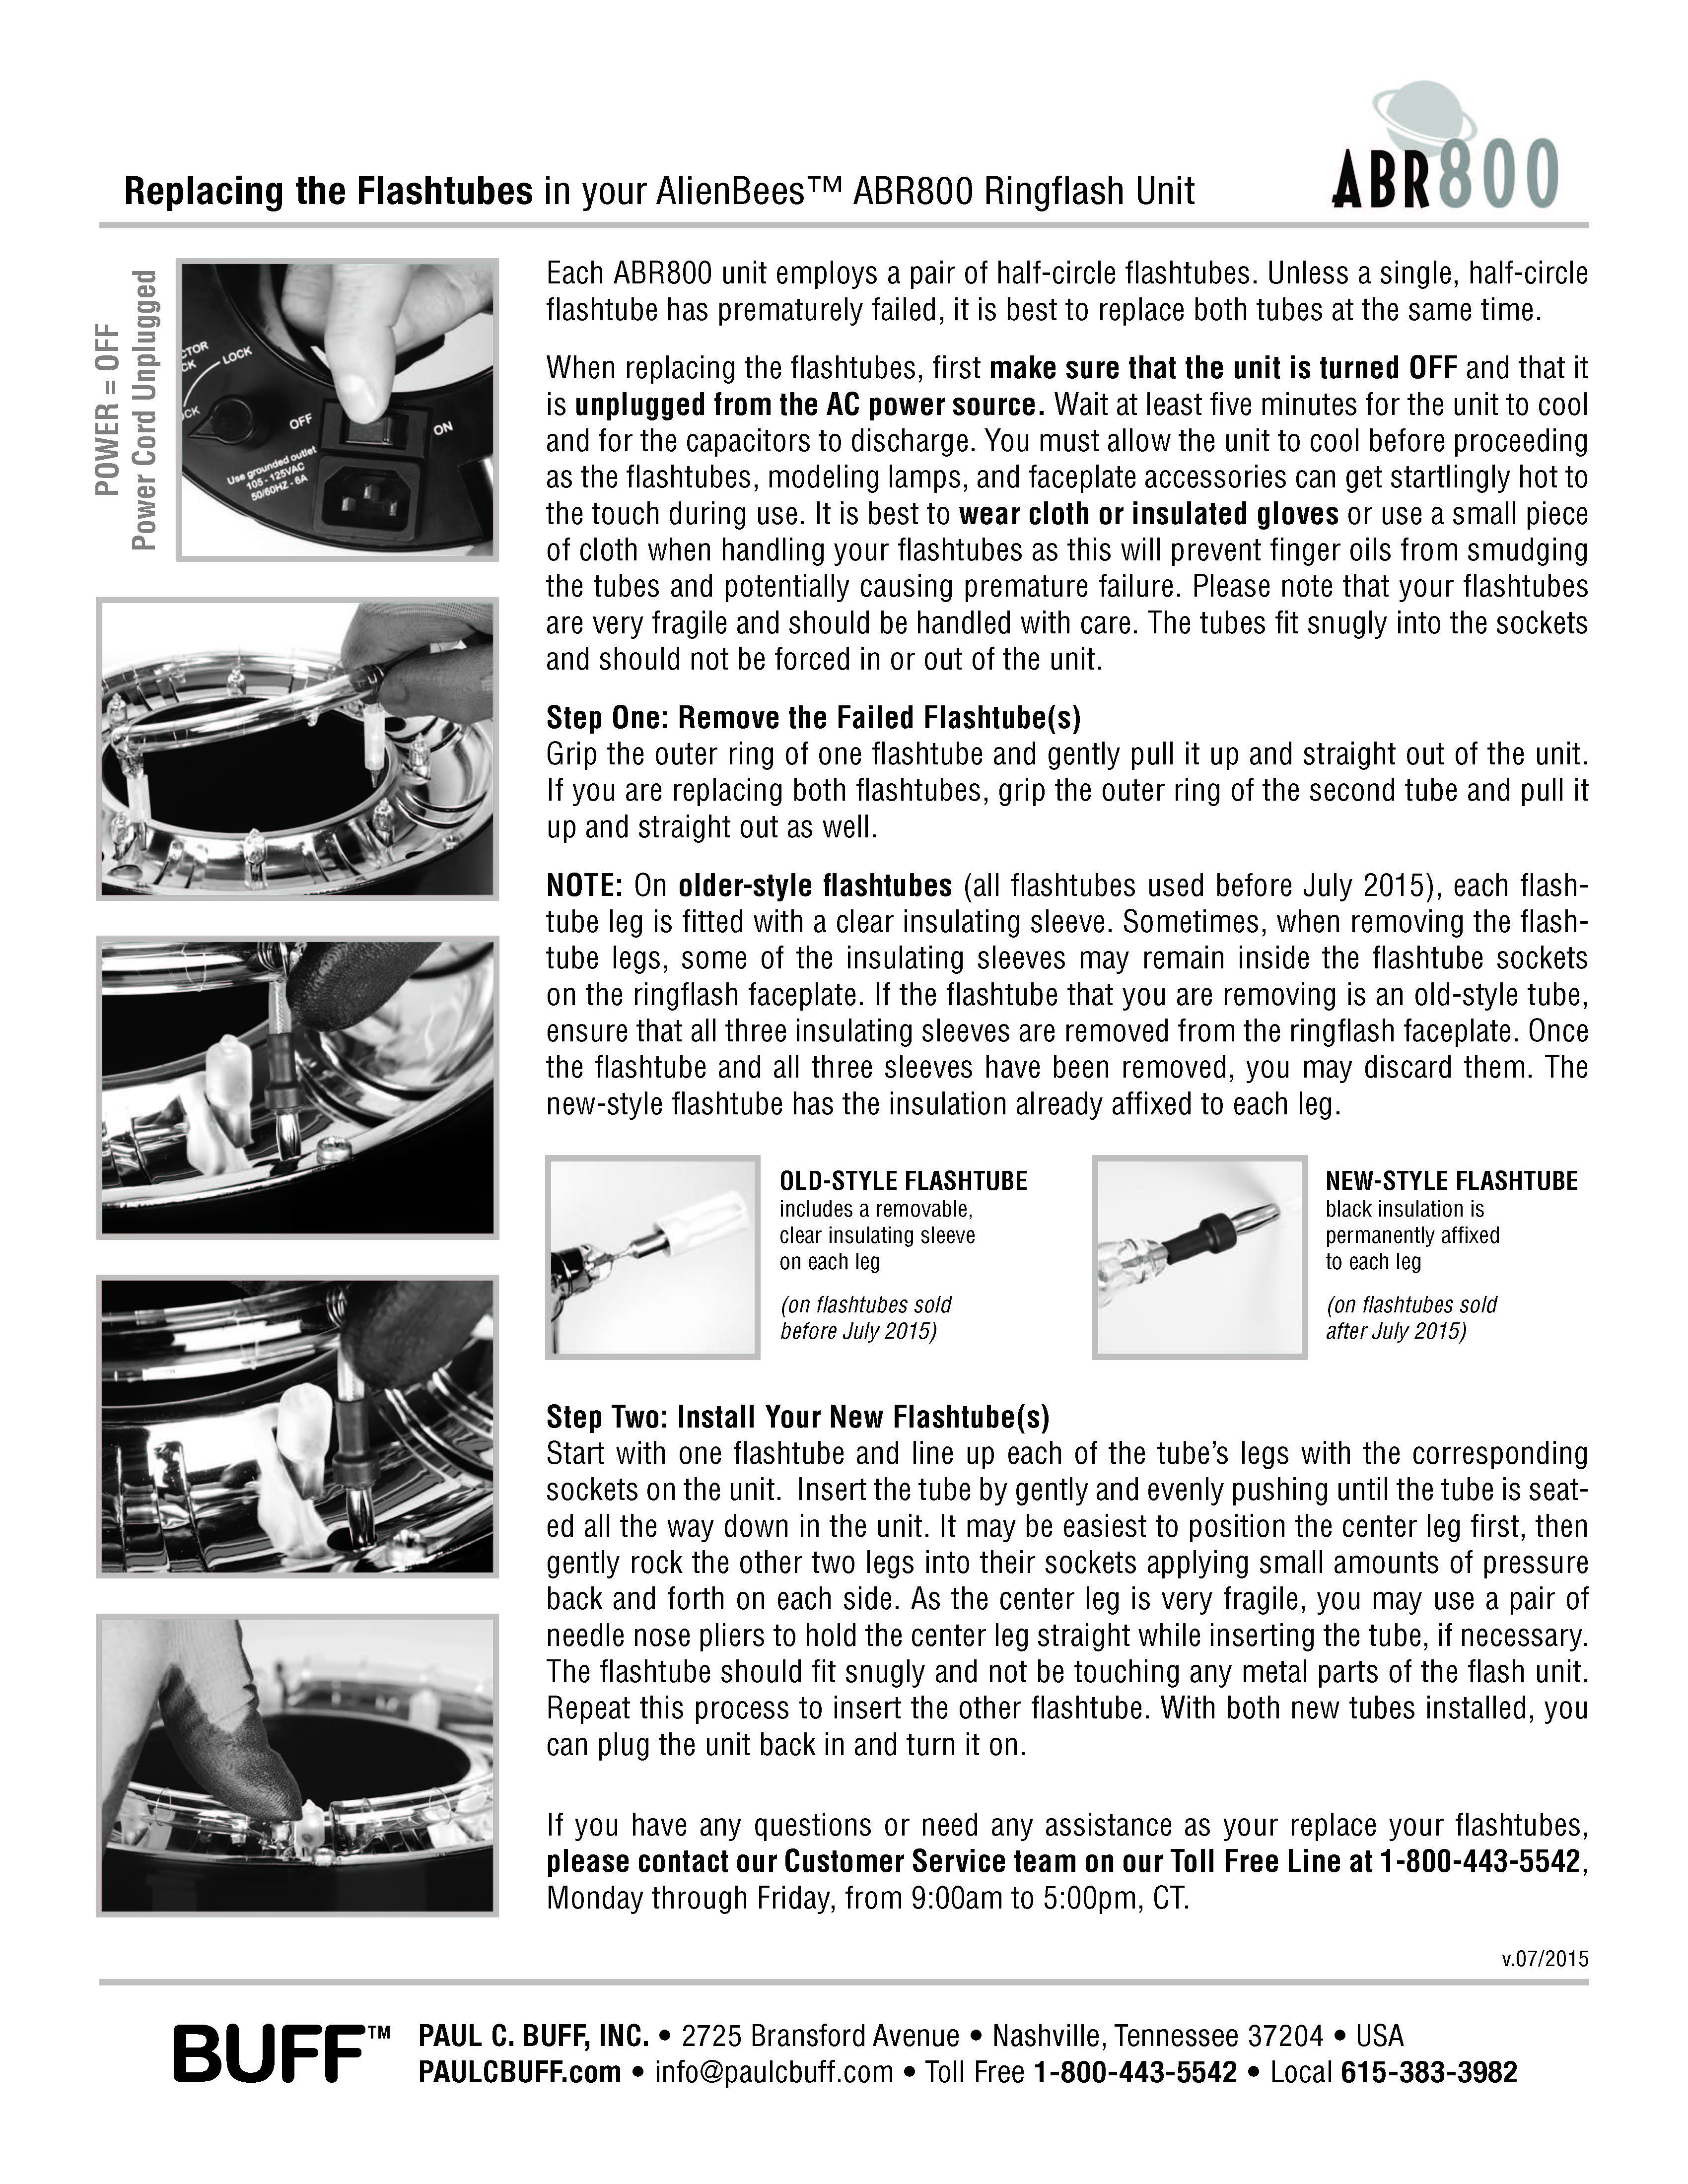 AlienBees Ringflash Flashtube Replacement Instructions